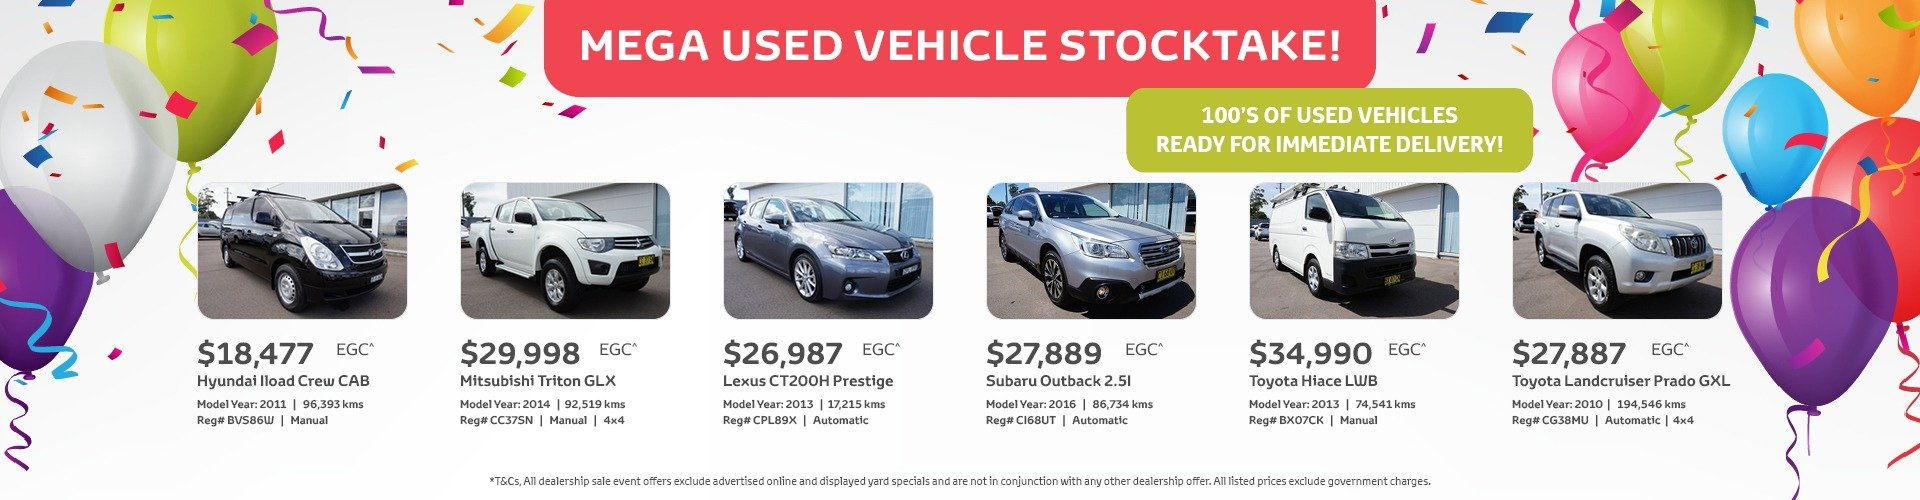 Cardiff Toyota Used Vehicle Specials